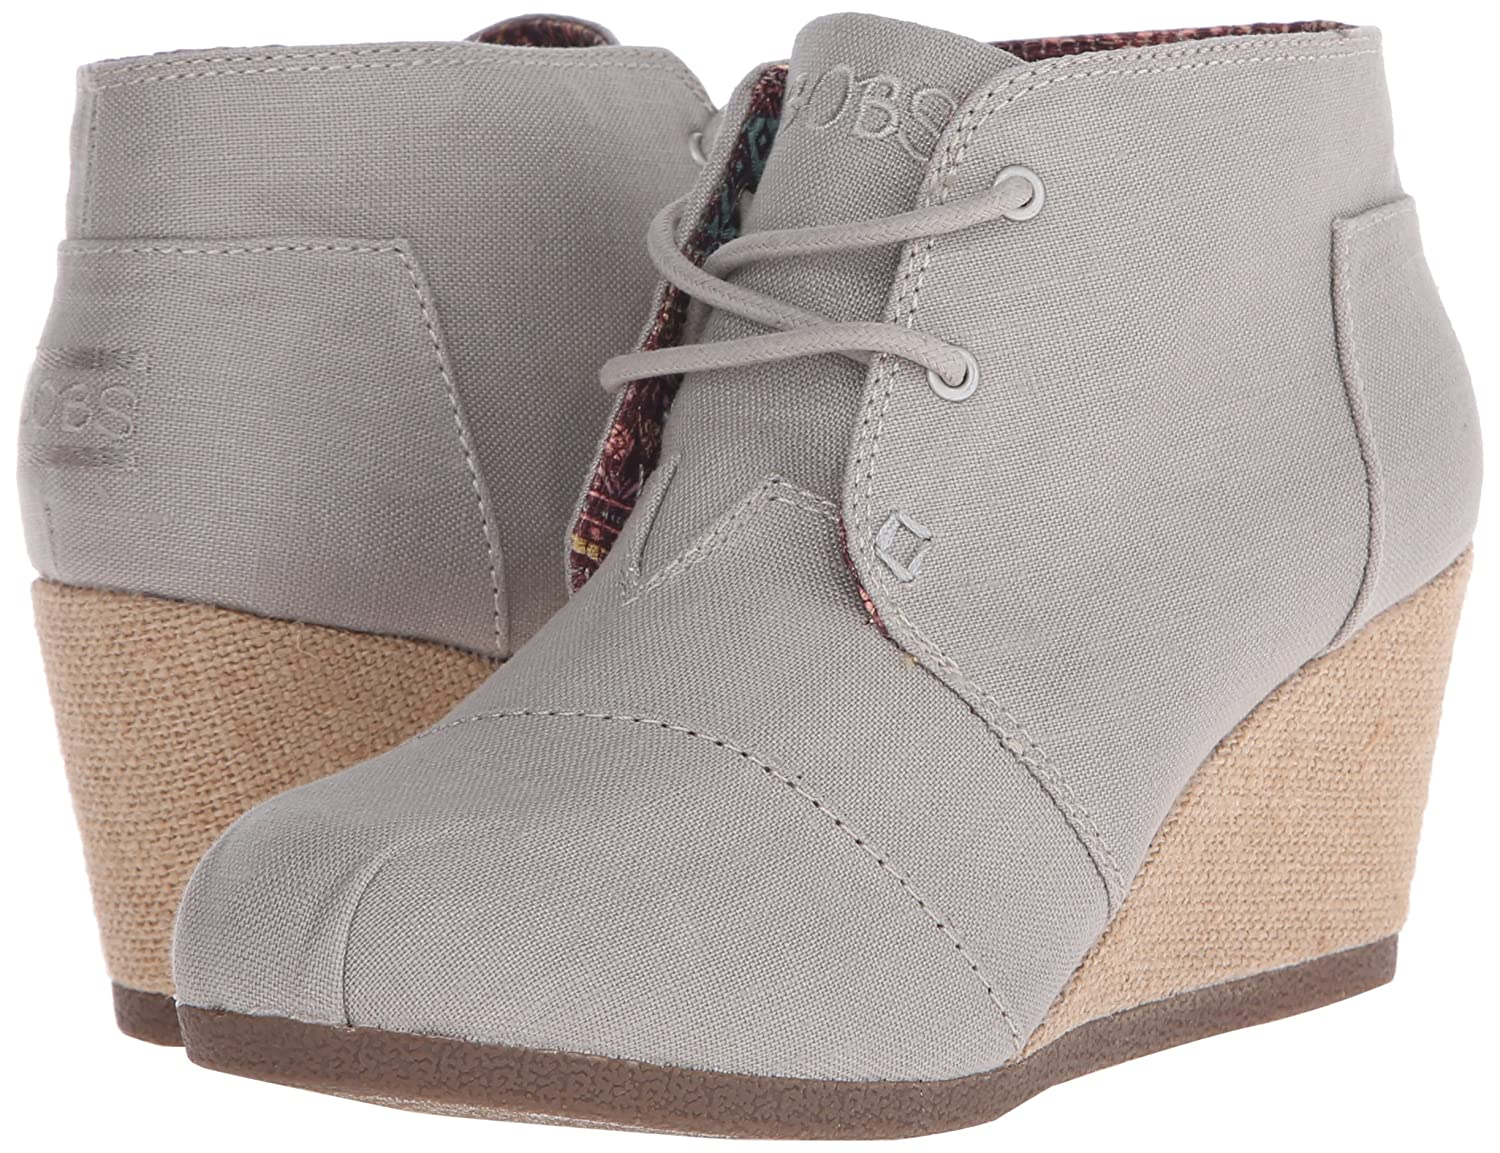 Skechers BOBS from Women's High Notes Wedge Boot B018BIS13K 8 B(M) US Taupe Linen